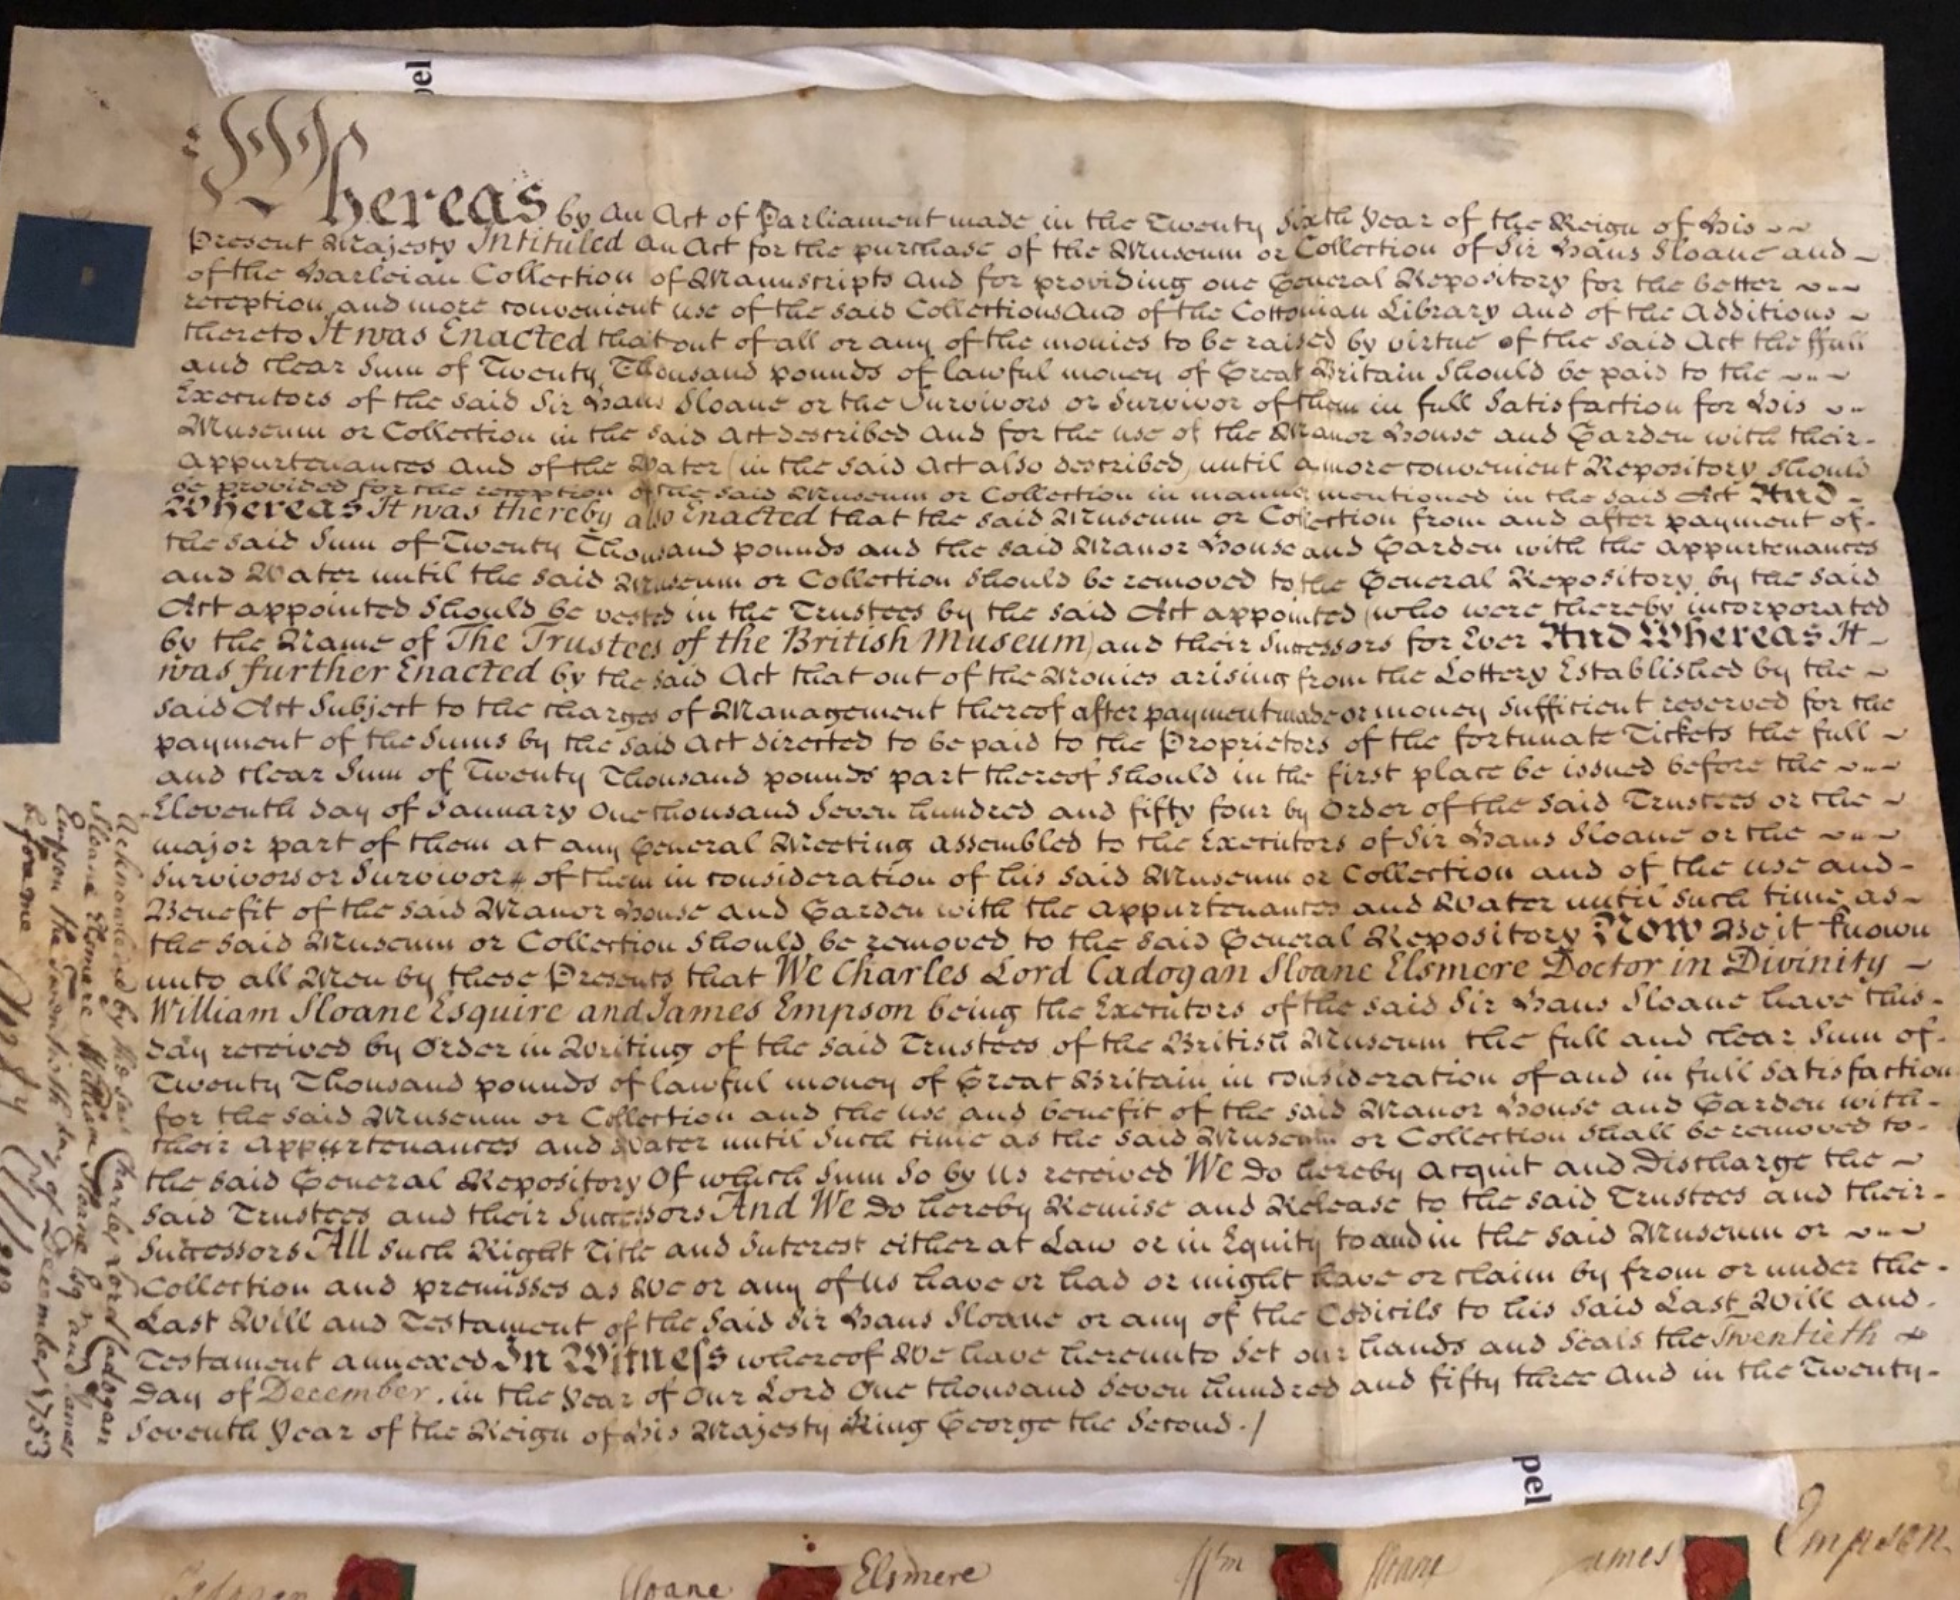 Image of the handwritten foundation deed for the British Museum, dated 20th December 1753 .